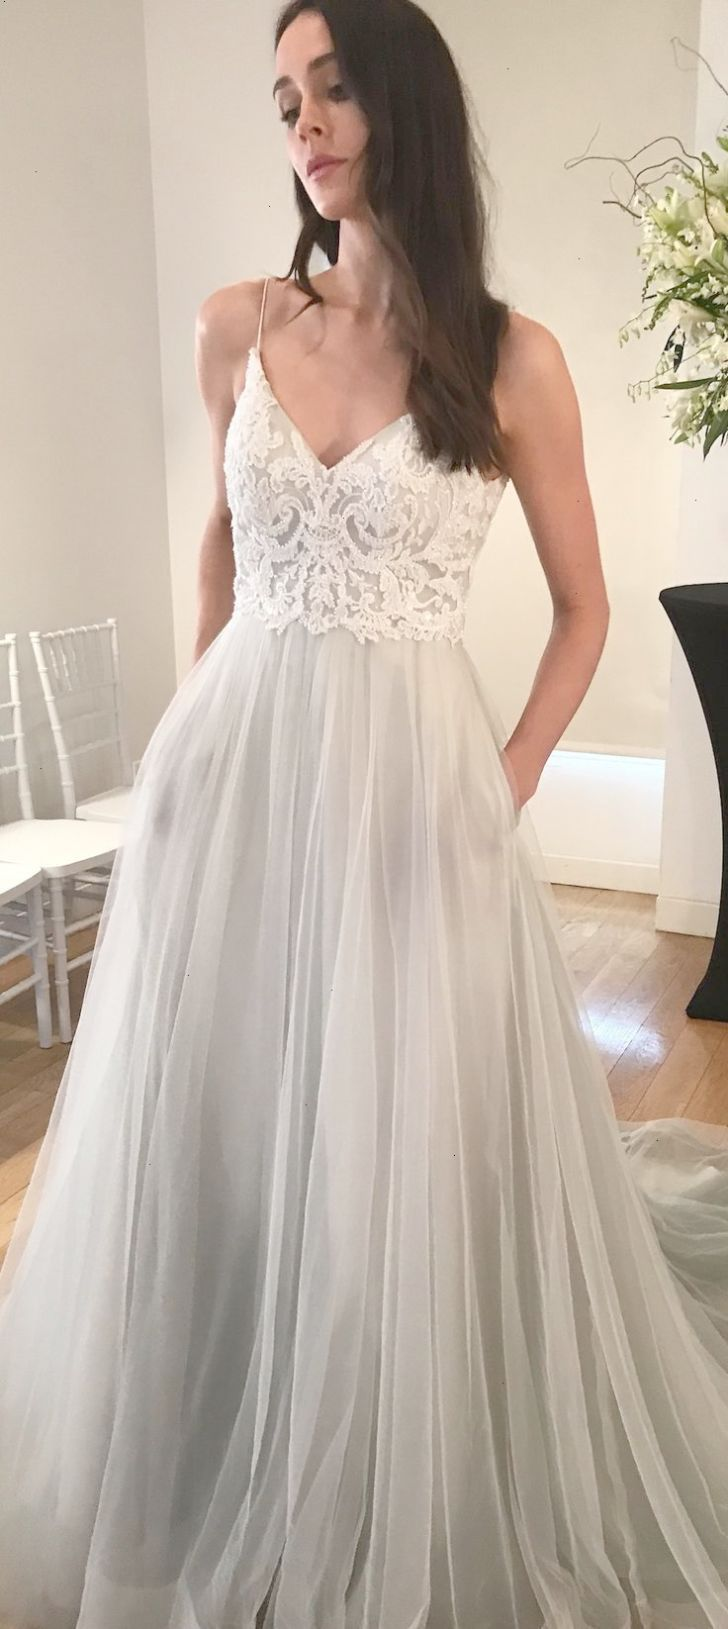 Pockets lace wedding dresses pinterest lace wedding dresses